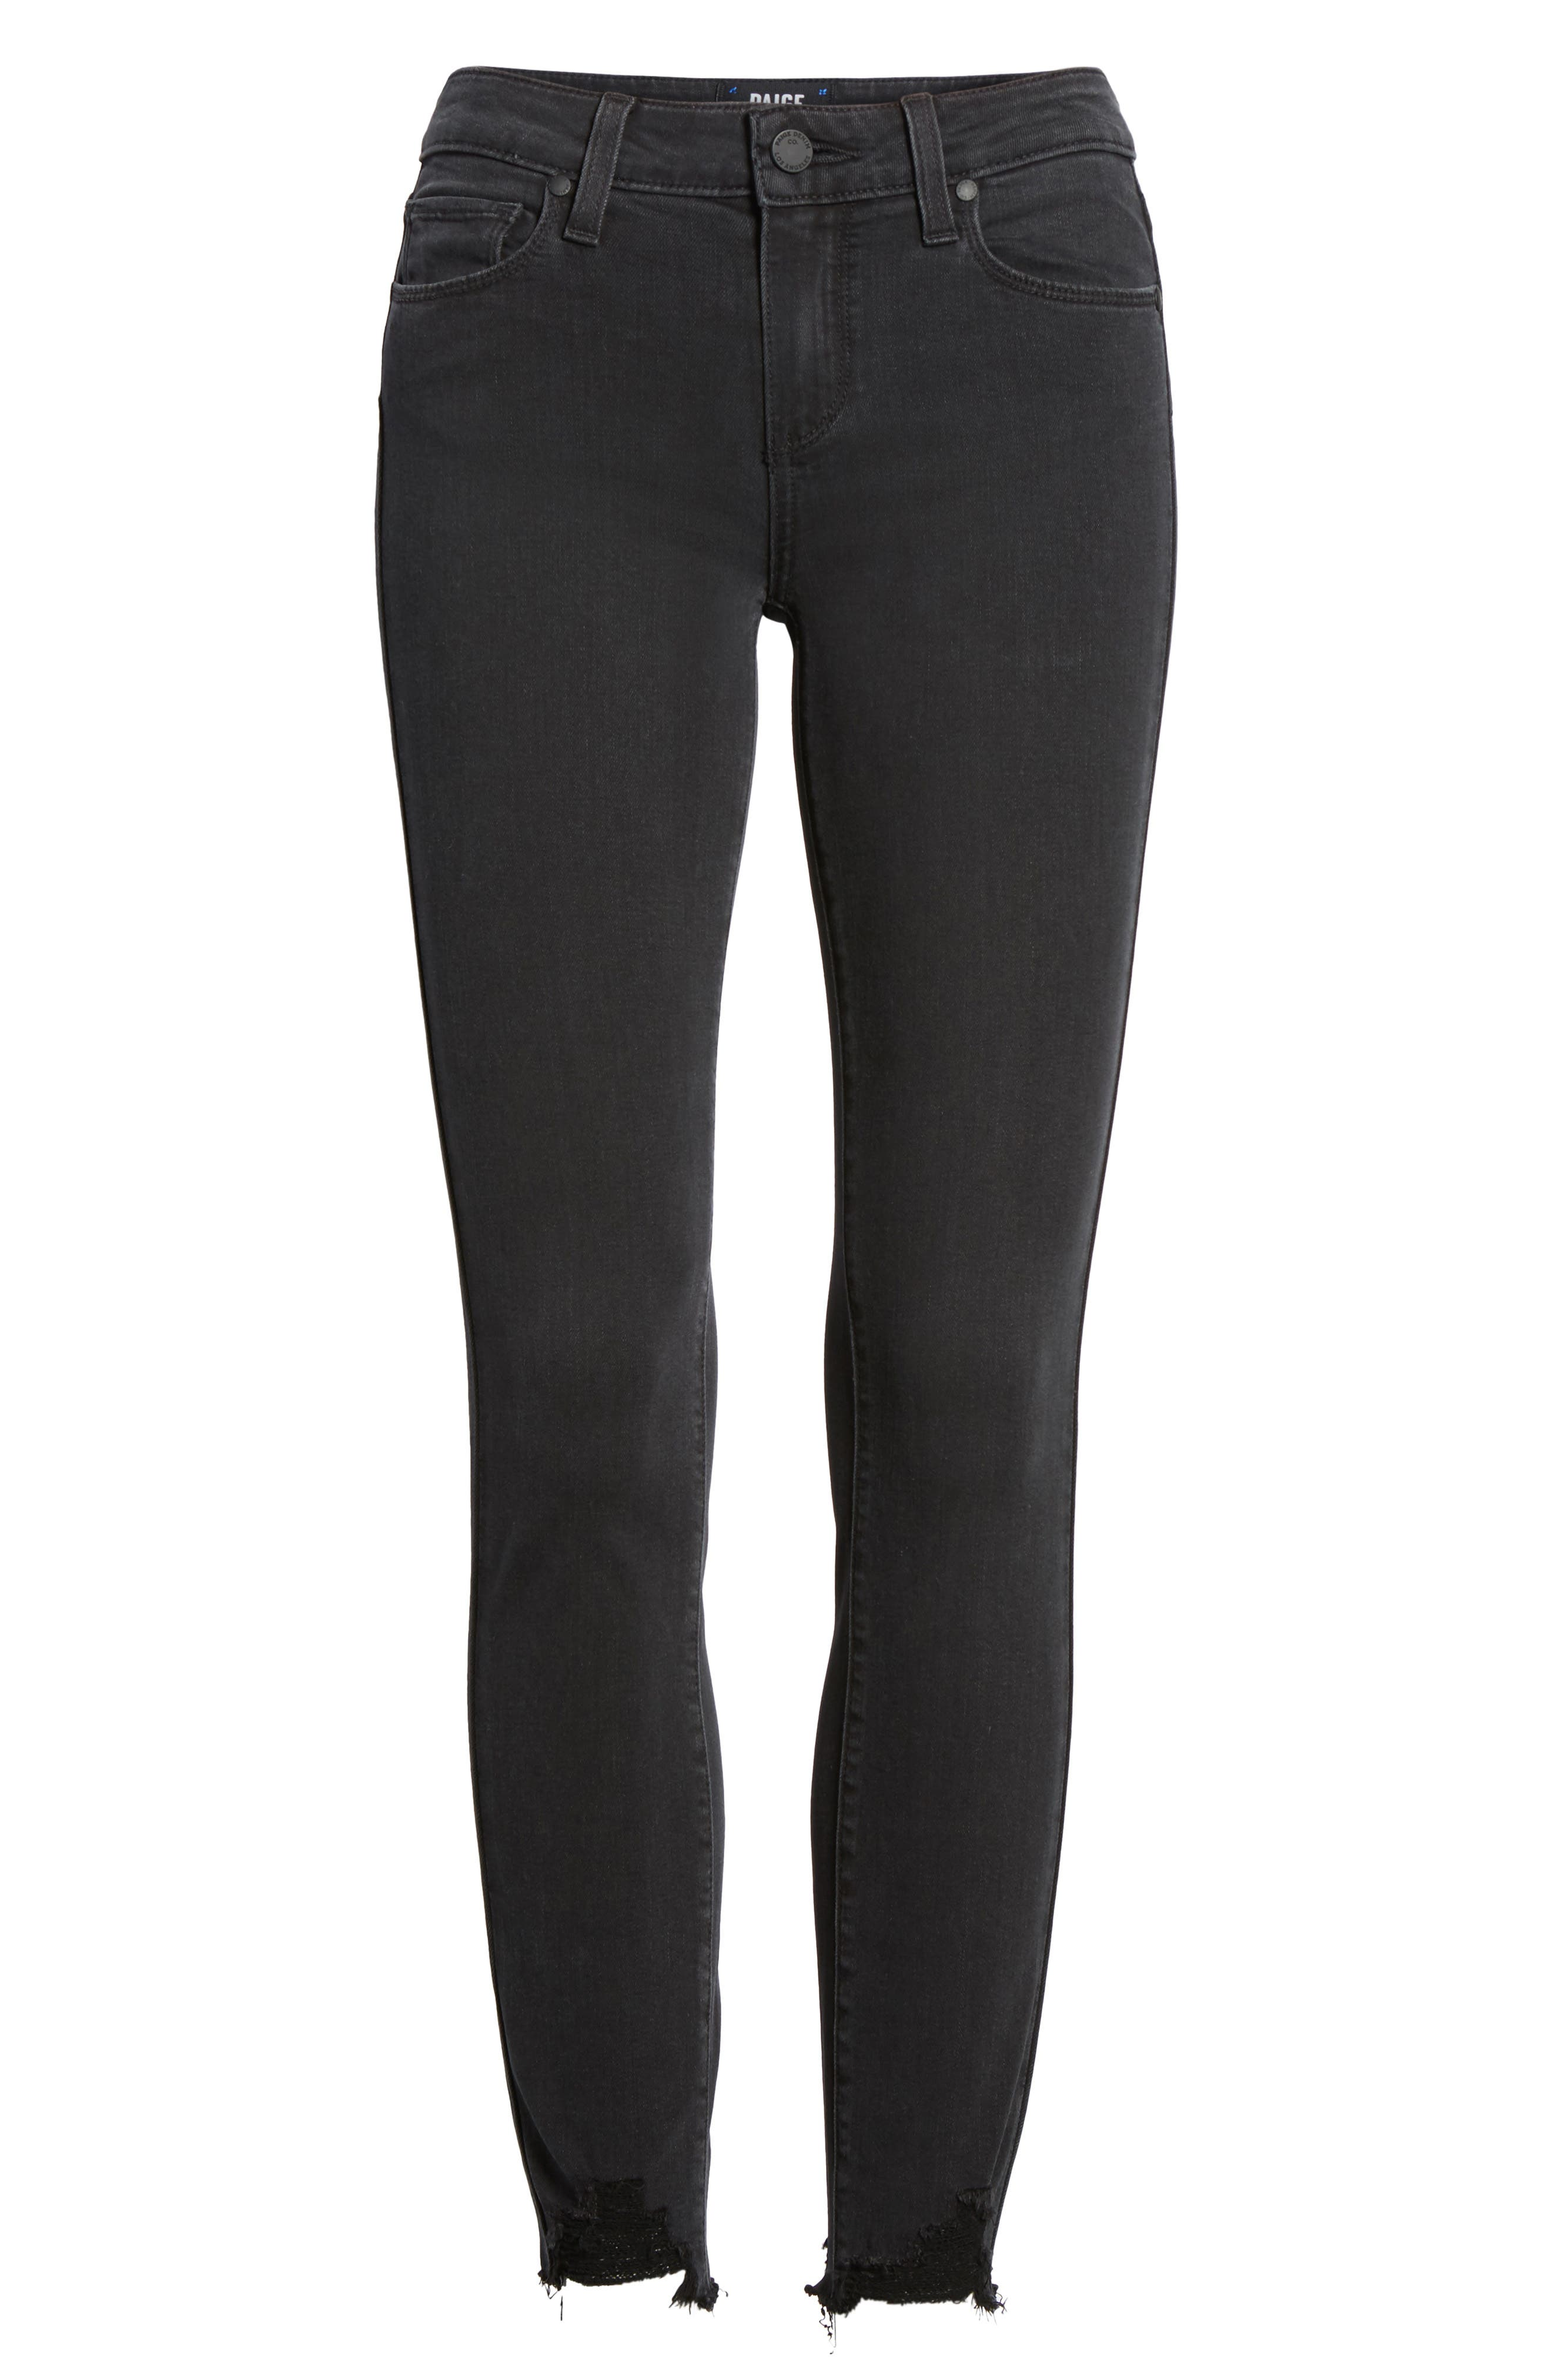 PAIGE, Transcend - Verdugo Ankle Skinny Jeans, Alternate thumbnail 7, color, 001